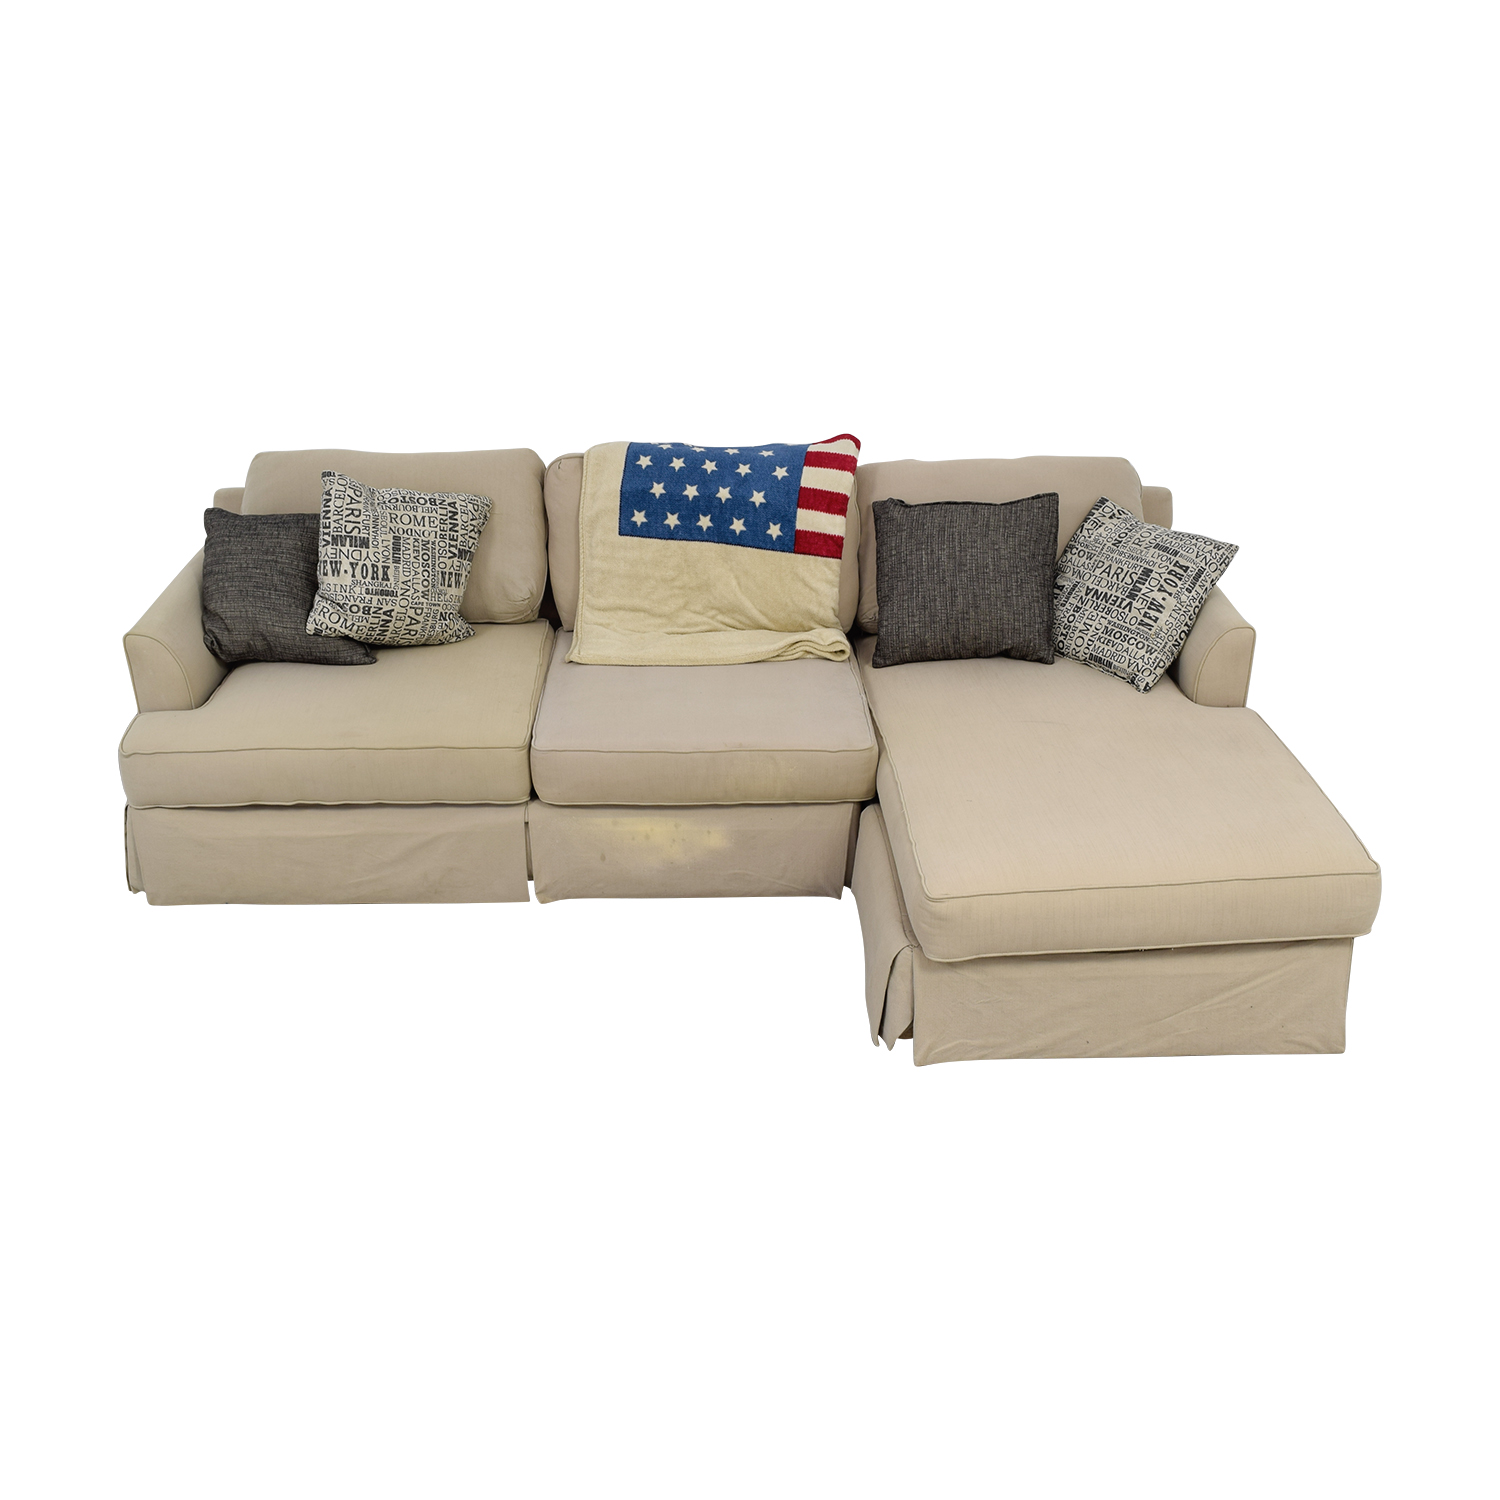 Kevin Charles Kevin Charles Beige Chaise Sectional on sale